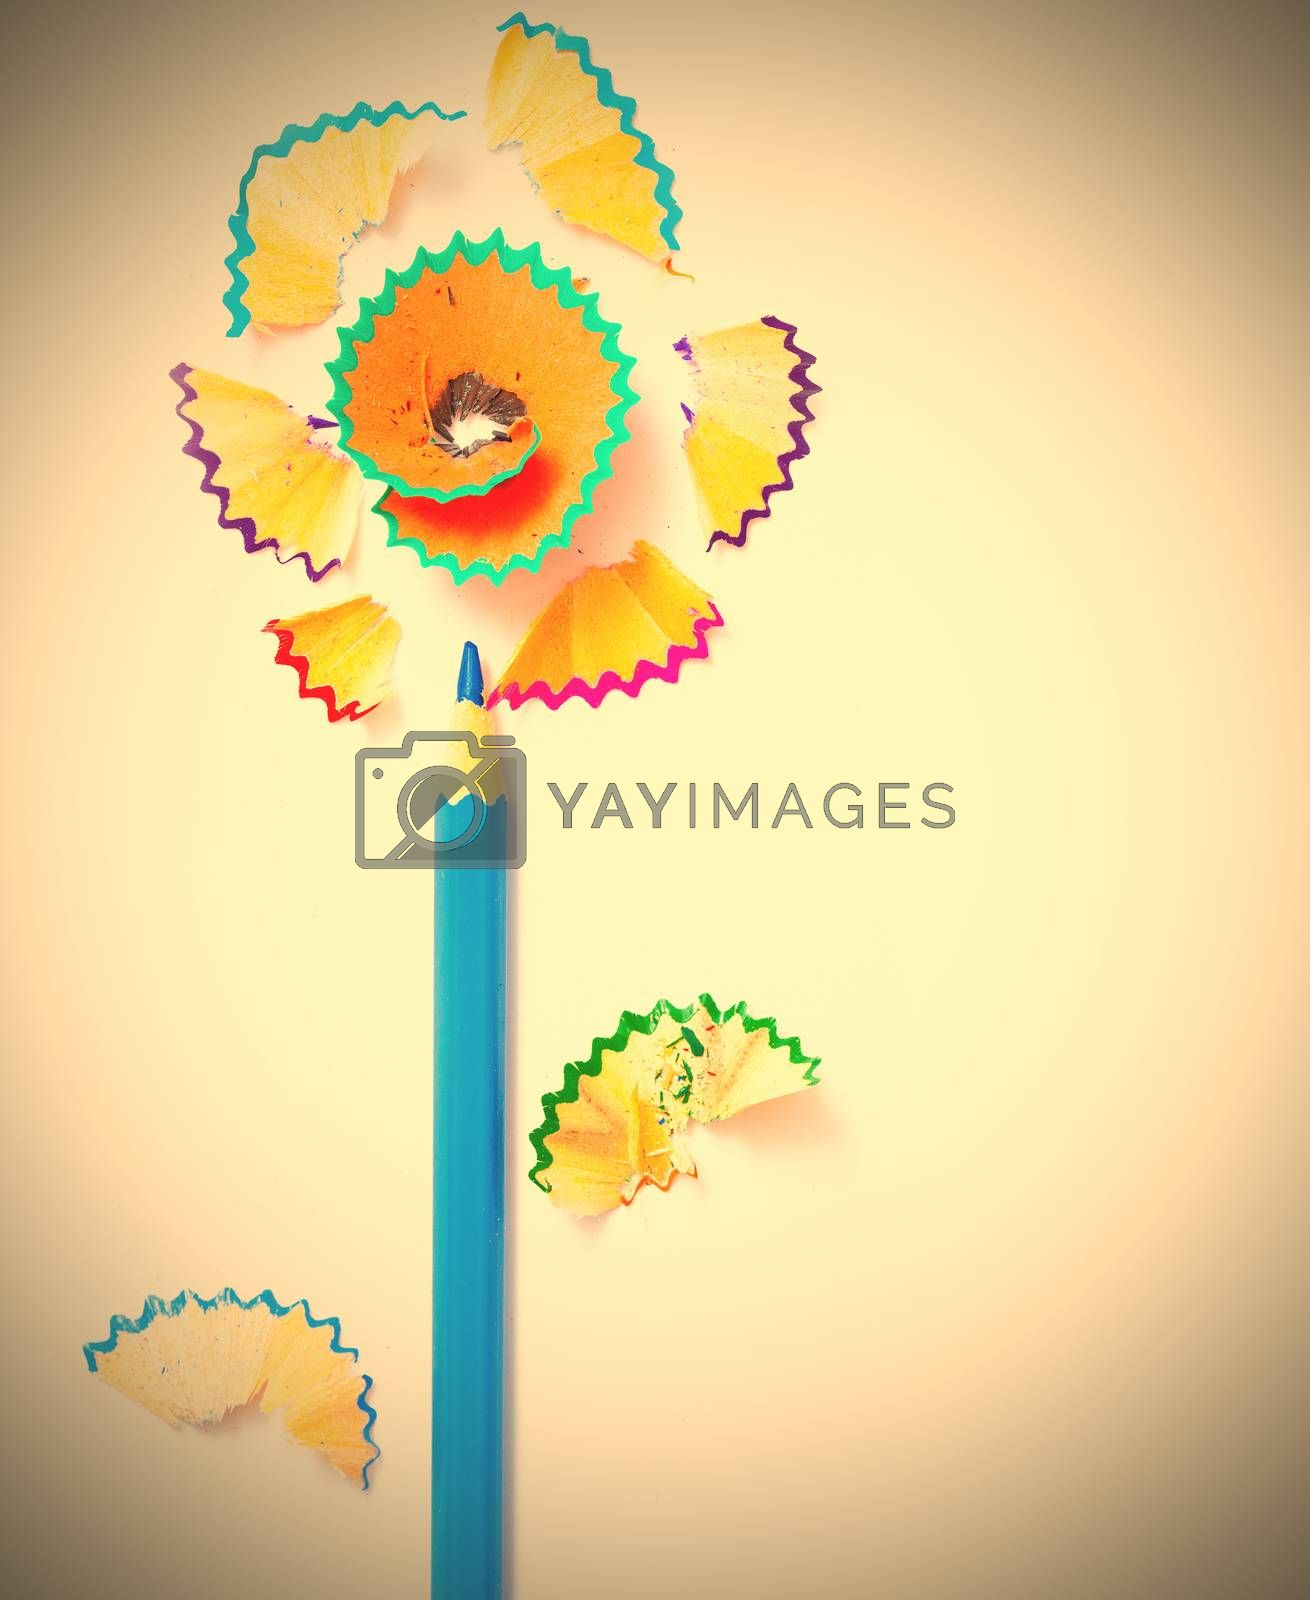 art flower from blue pencil and colored shavings on white background. instagram image retro style